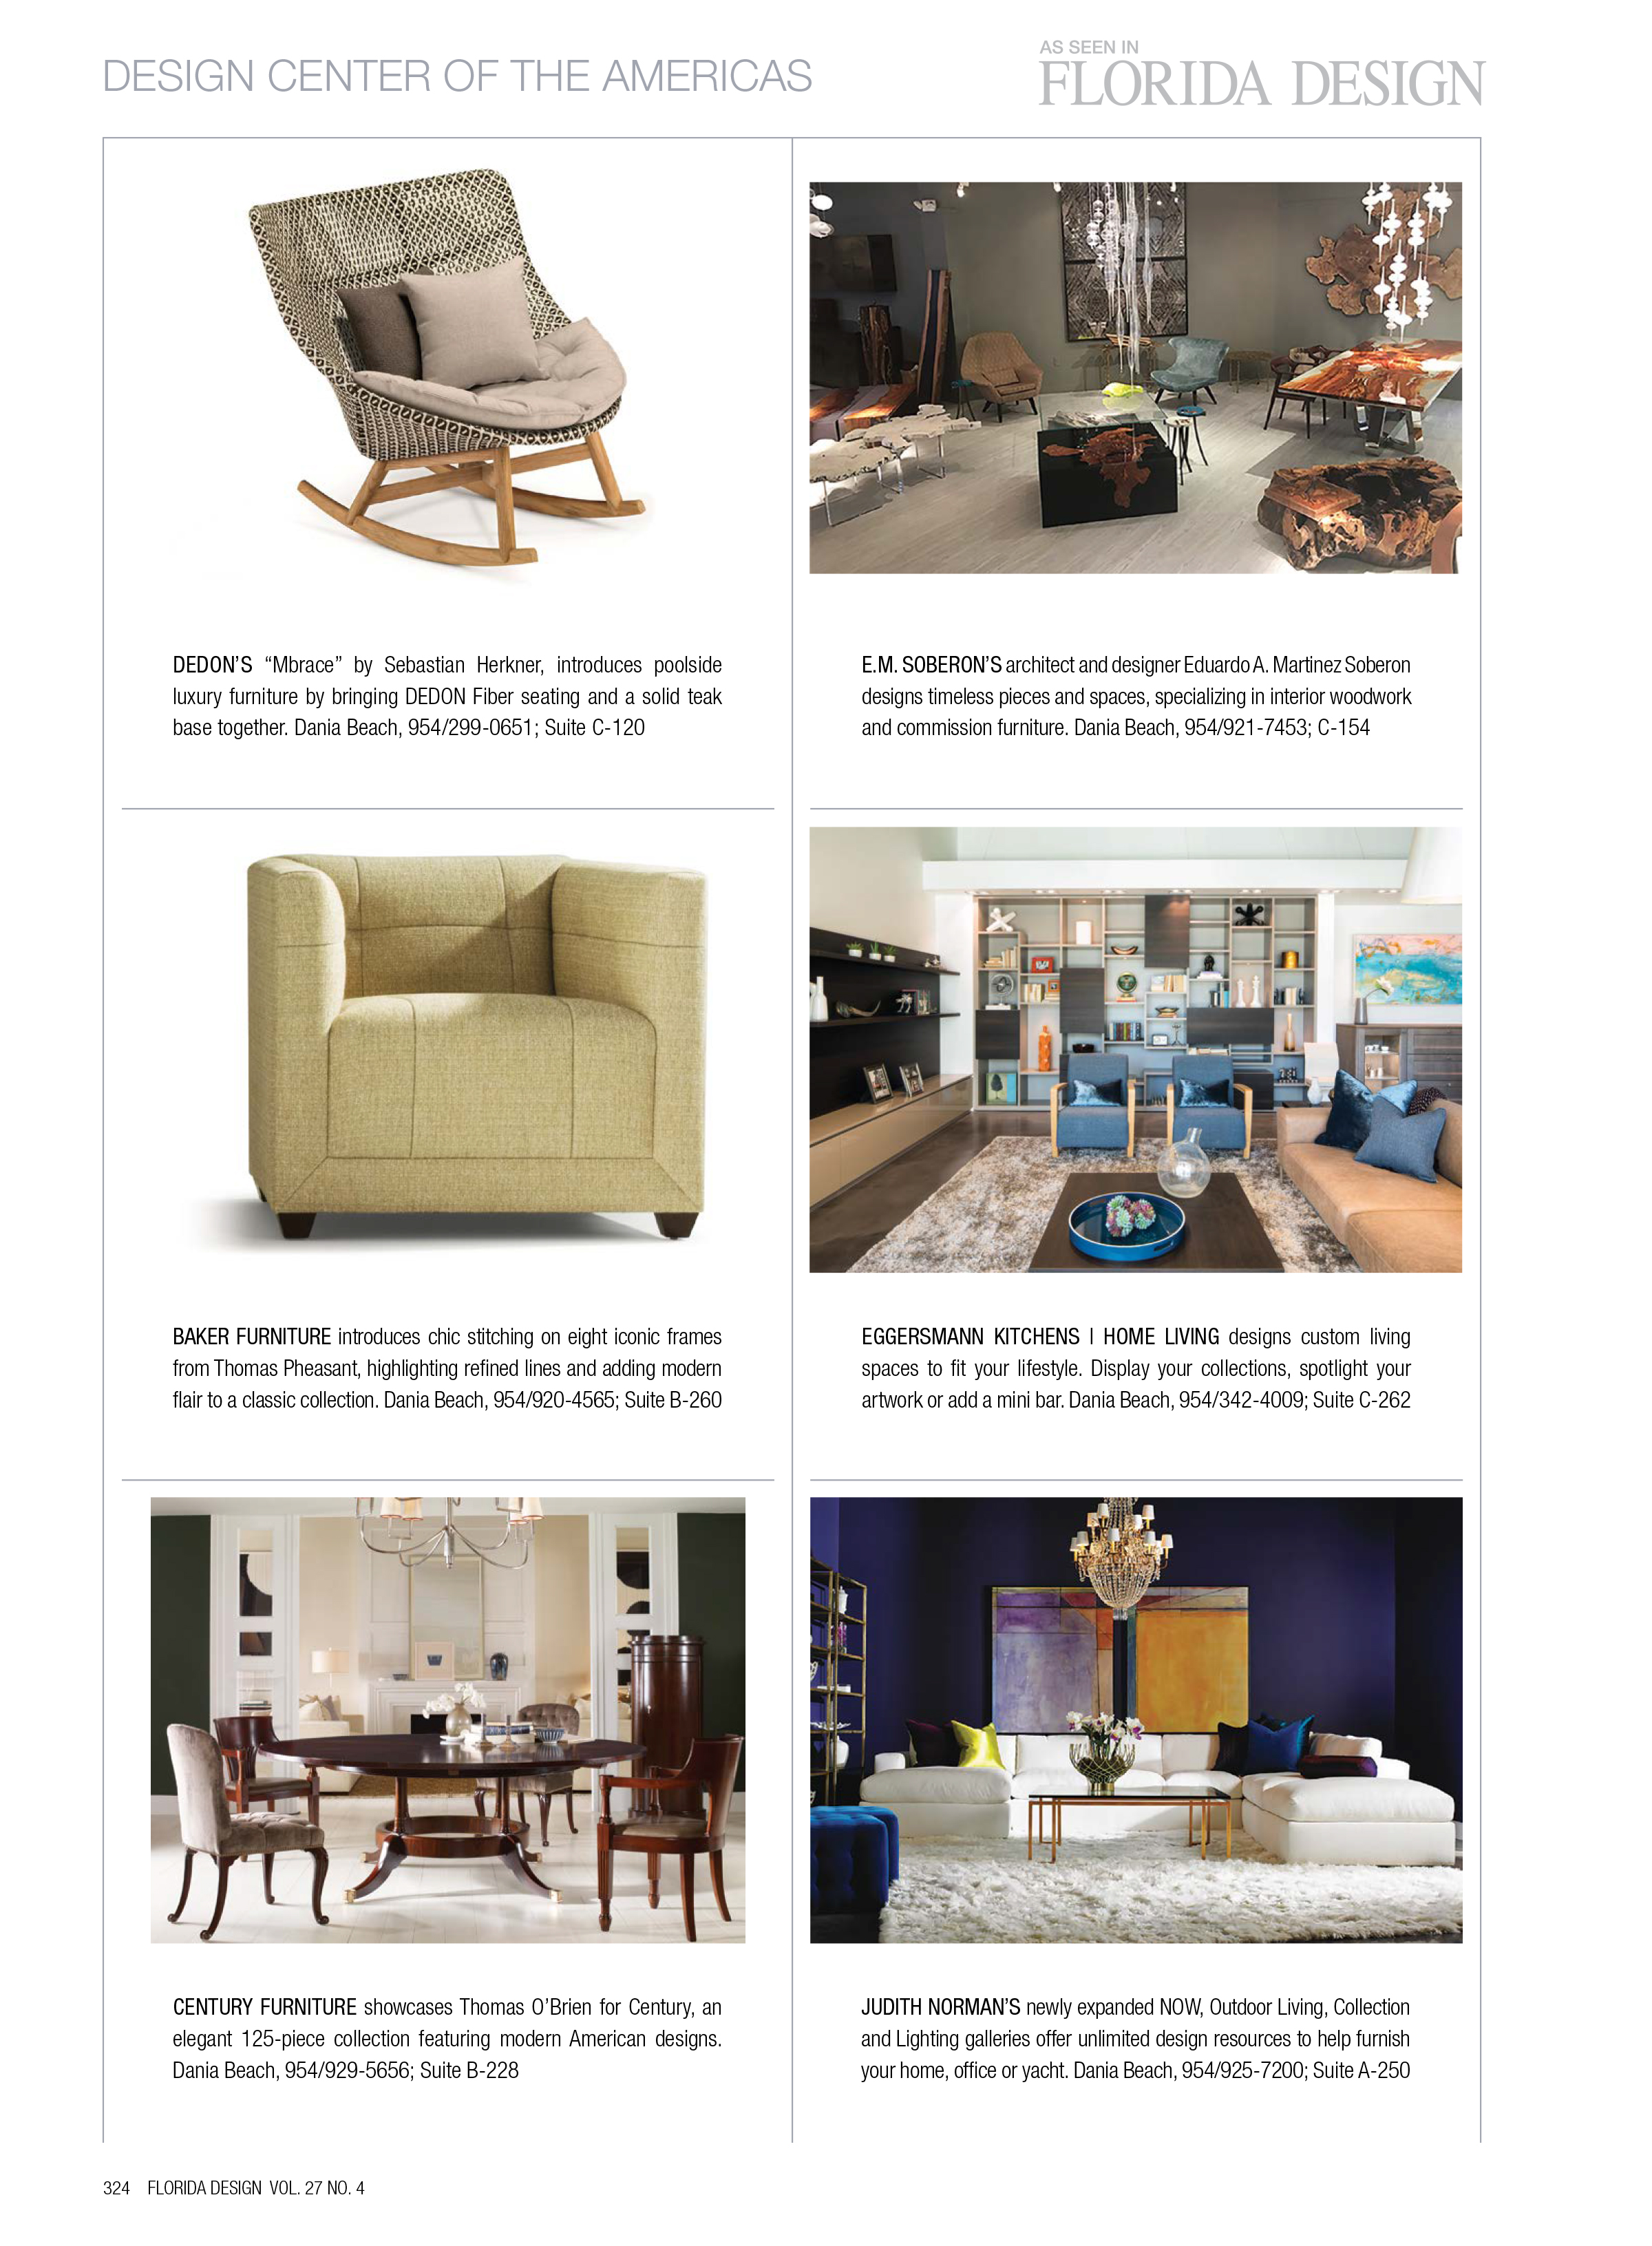 florida design magazine article featuring eggersmann cabinetry for solutions throughout the home